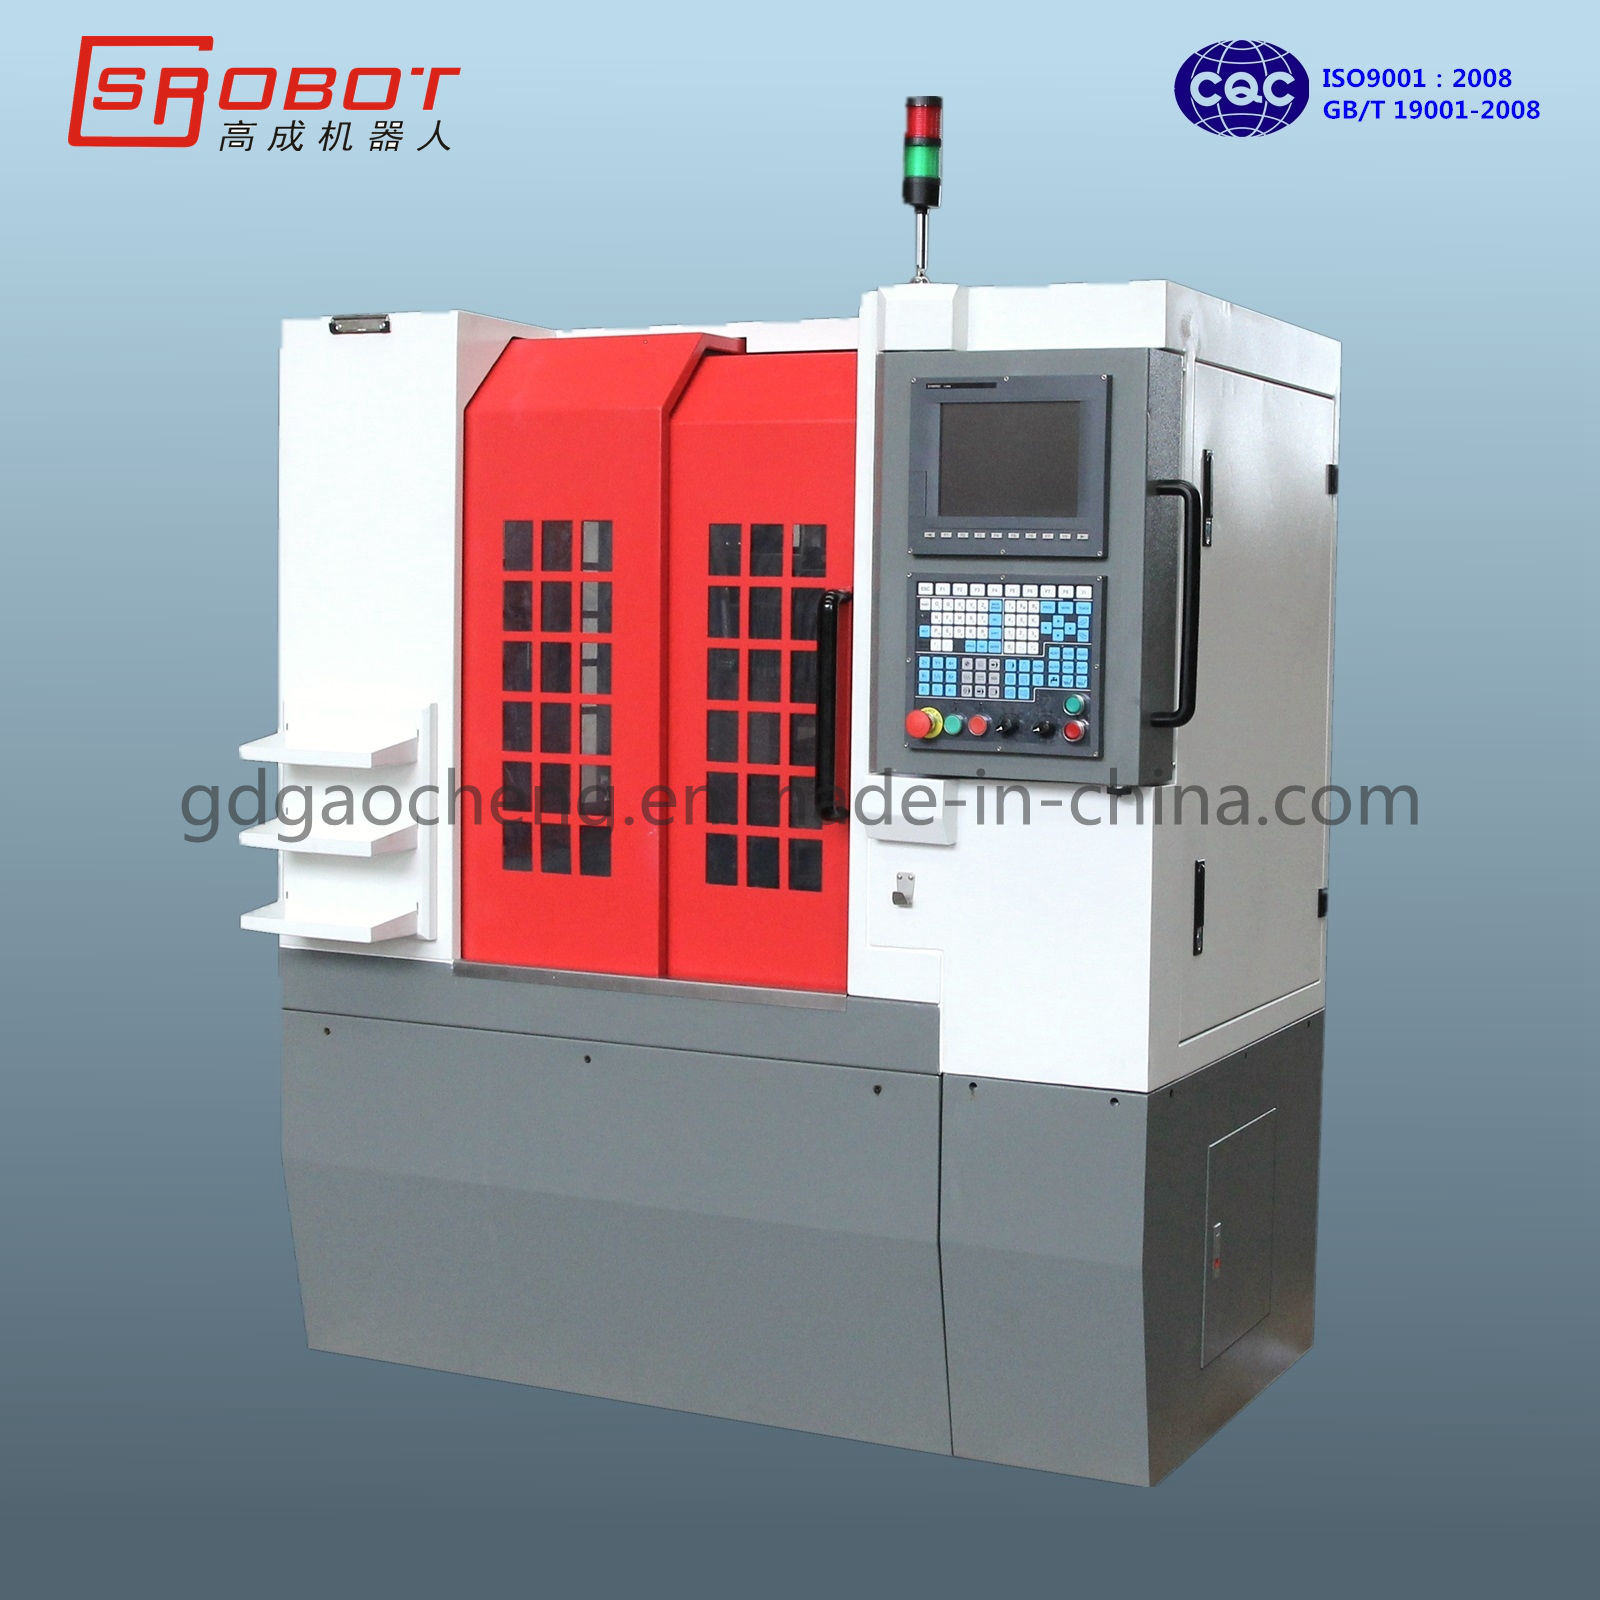 500X400mm Compact Design CNC Milling and Engraving Machine GS-E540